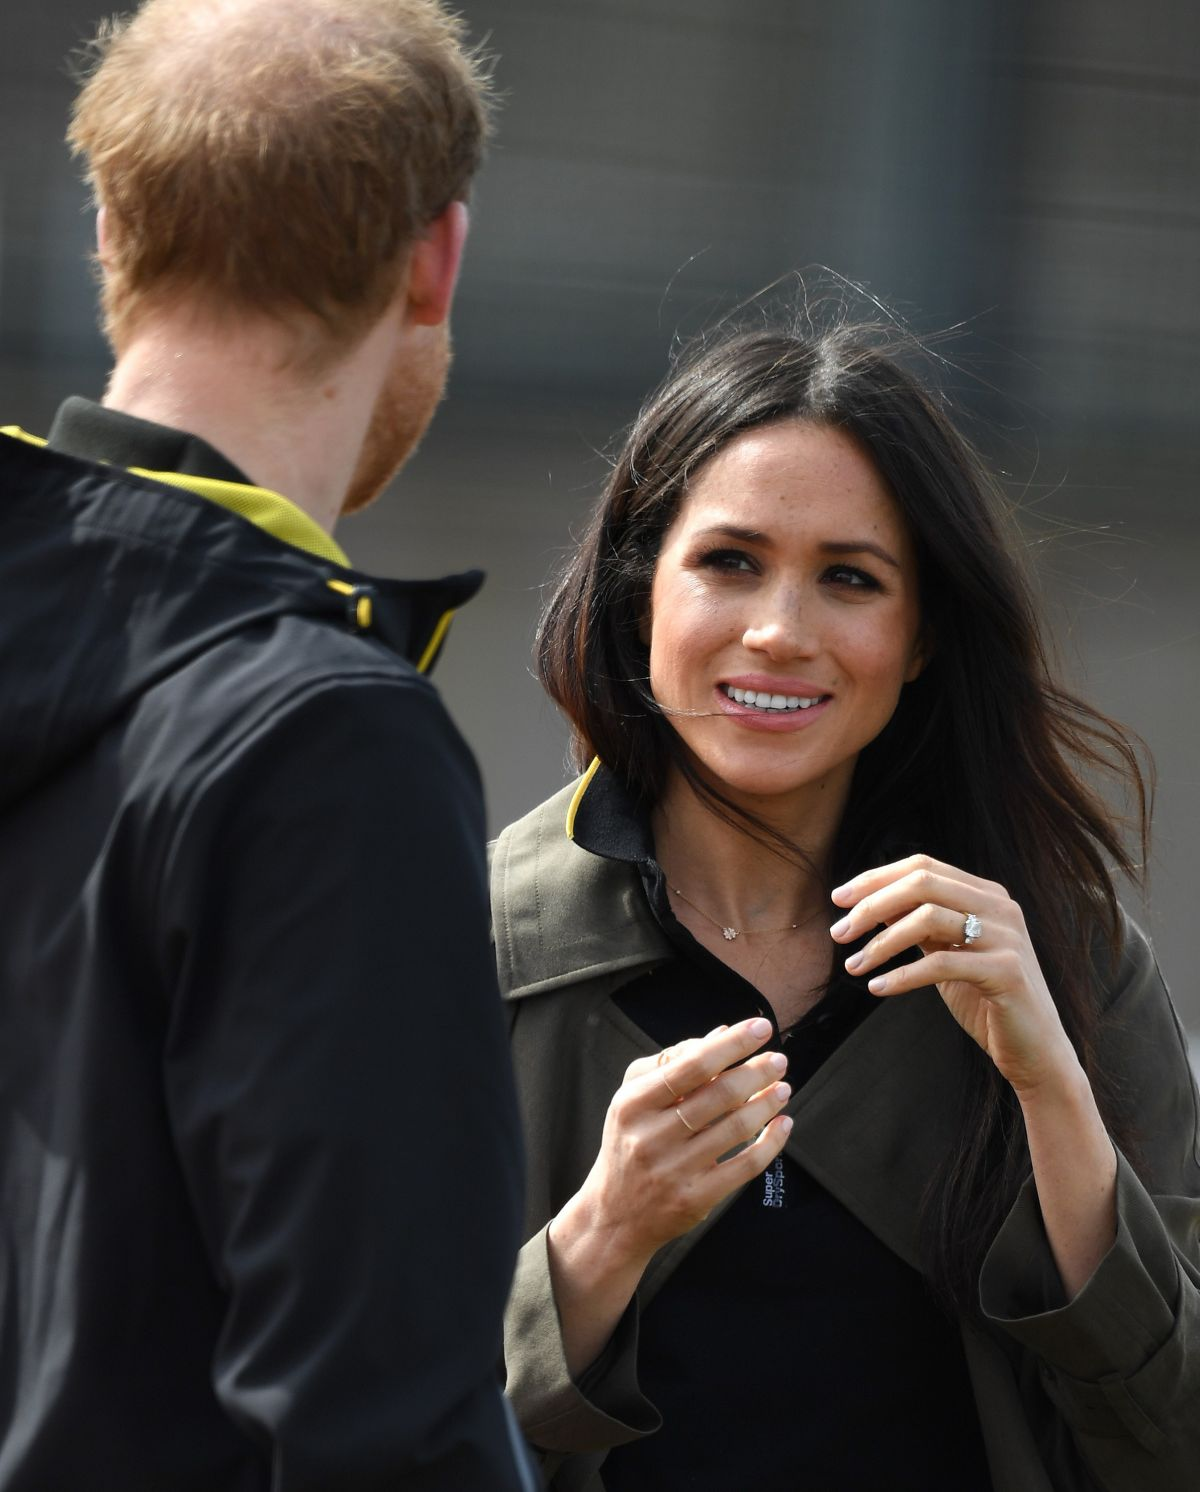 MEGHAN MARKLE And Prince Harry At UK Team Trials For